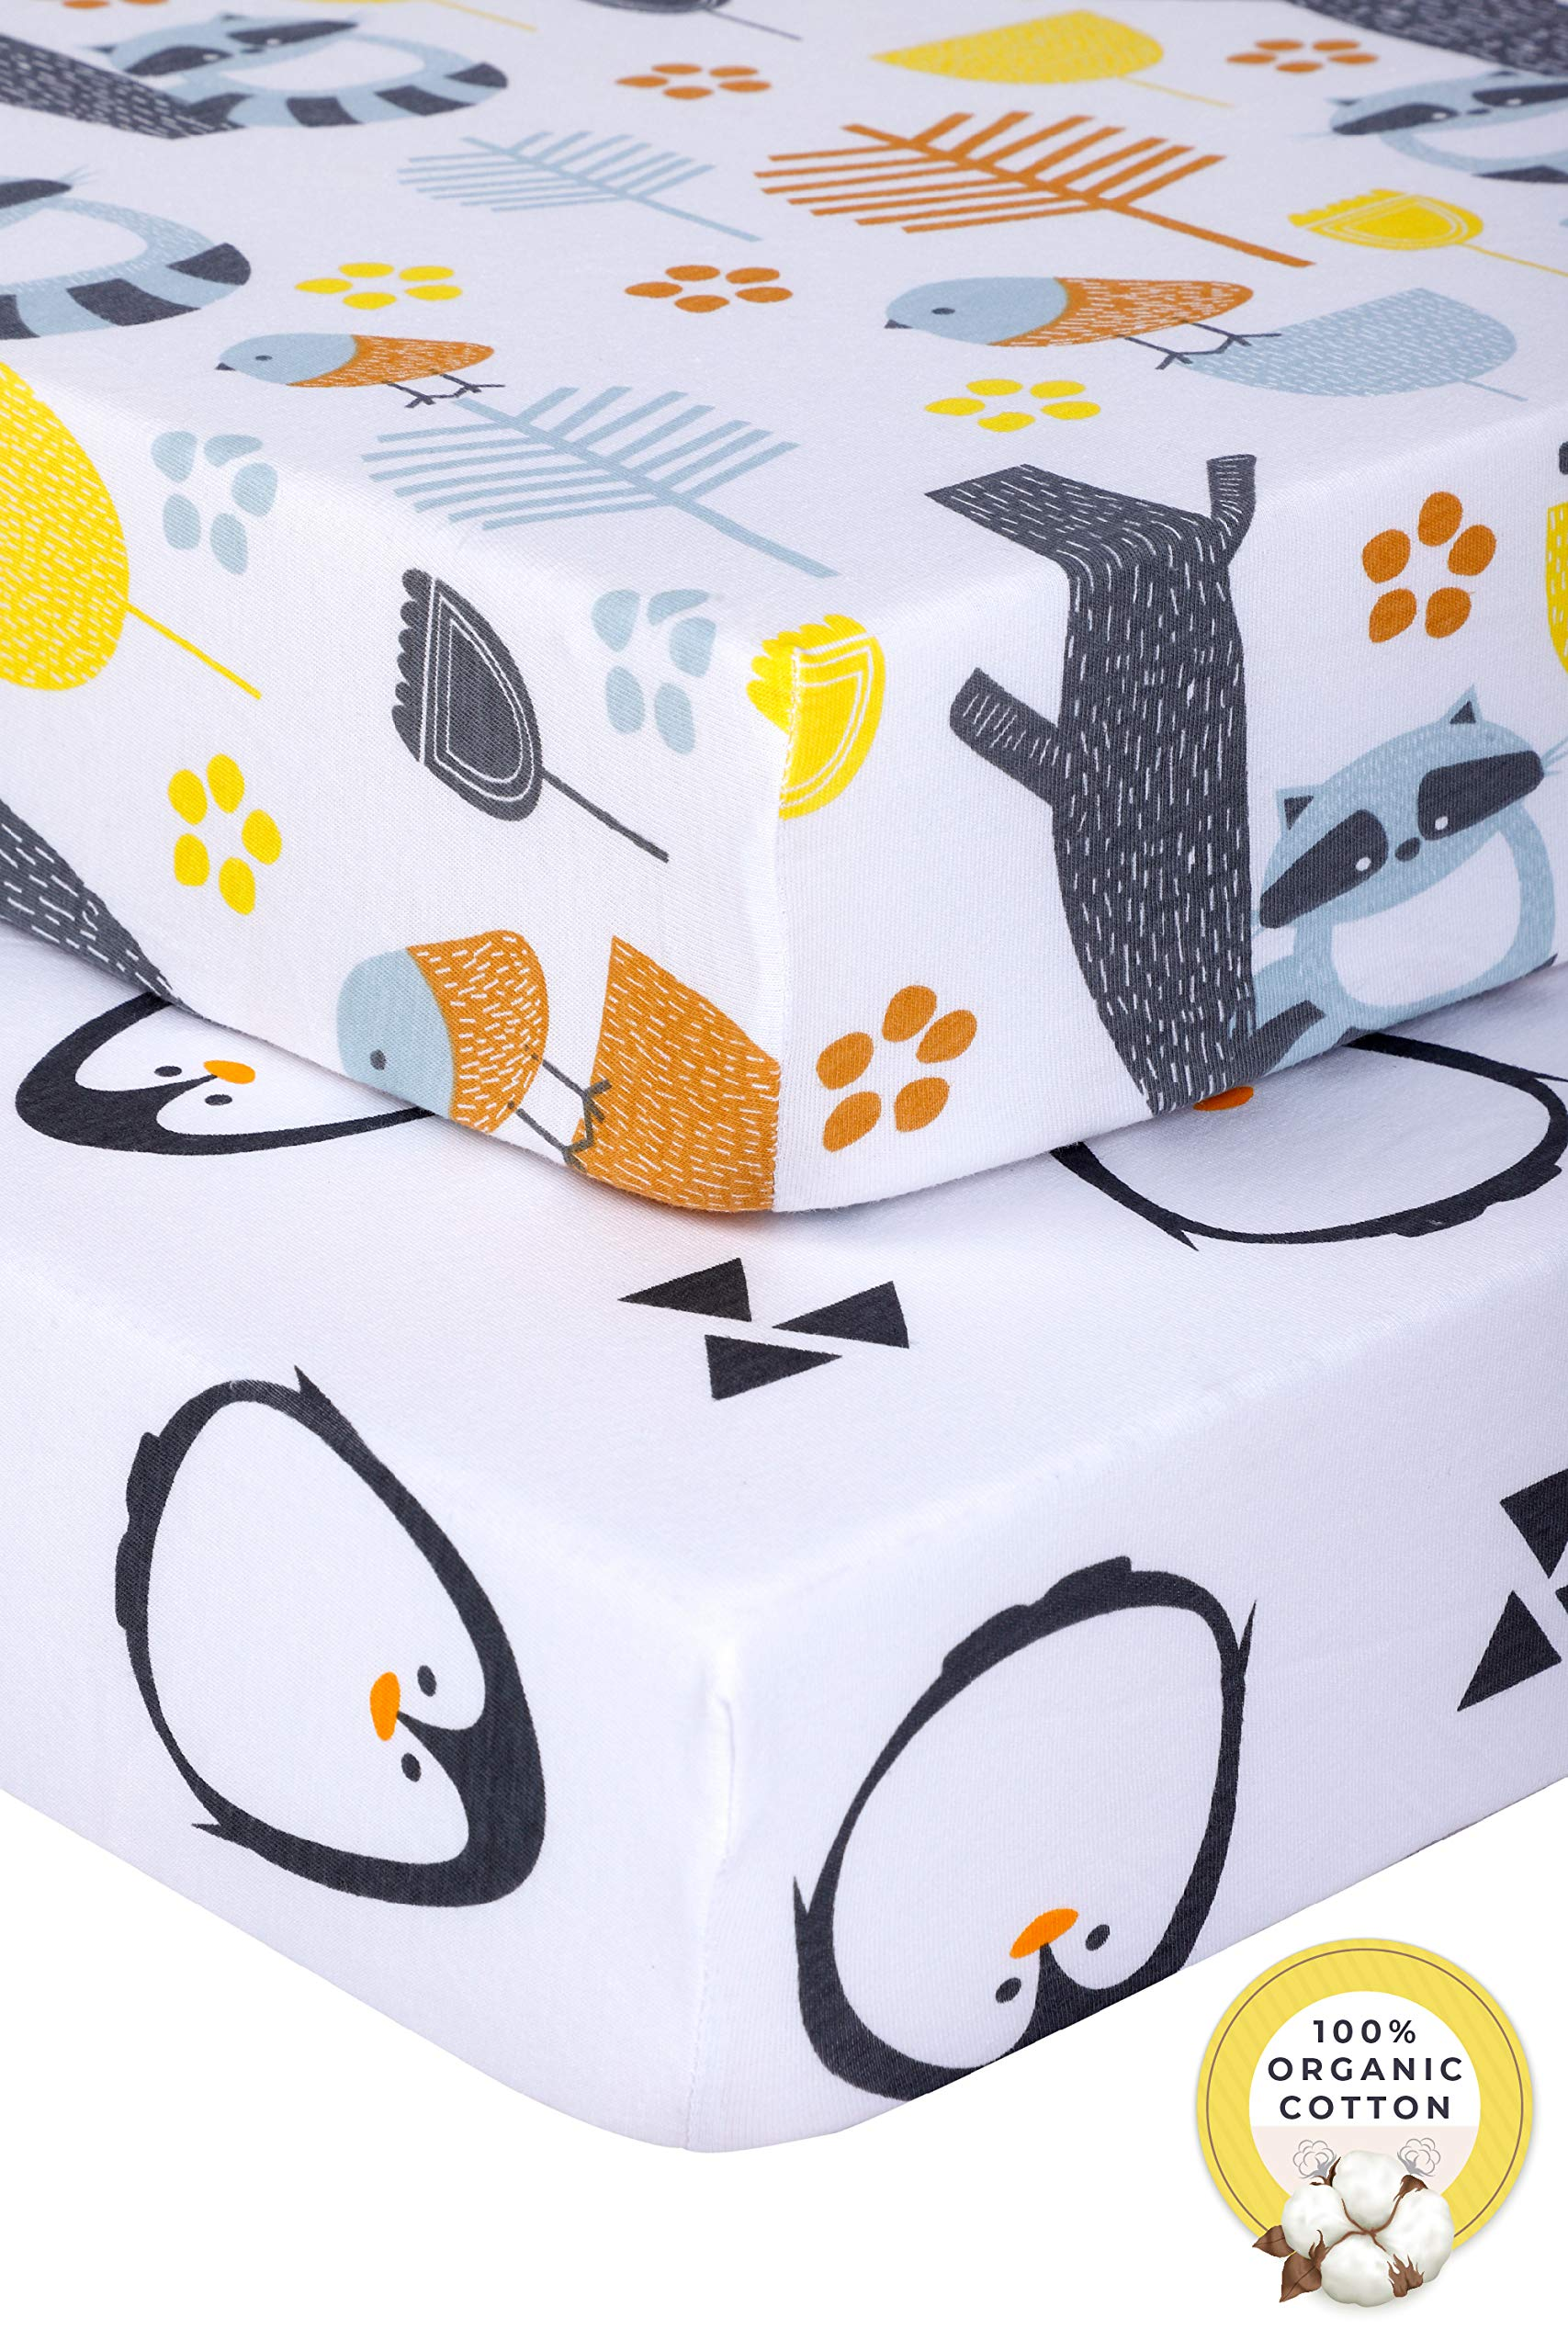 Pickle & Pumpkin Fitted Crib Sheets (2 Pack)|100% Organic Jersey Cotton | Toddler mattress or Standard crib mattress sheets | Toddler Bedding Sheet Set for Girls & Boys | Penguin & Woodland Crib Sheet by Pickle & Pumpkin